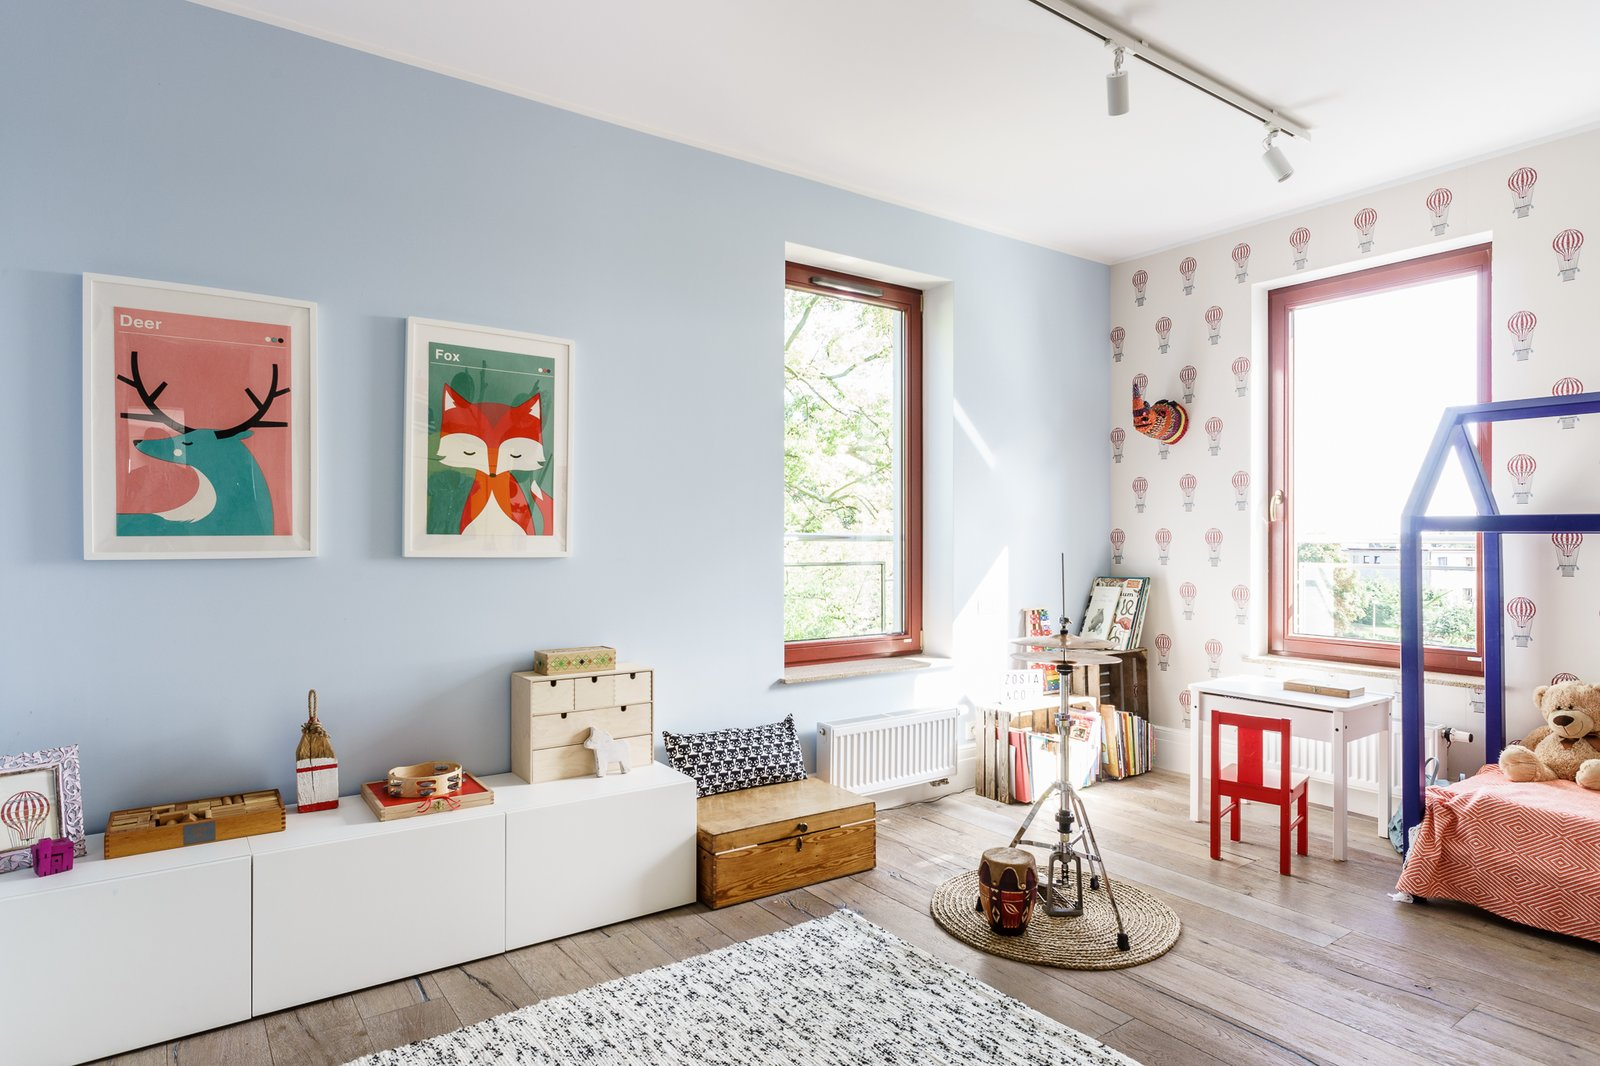 Tagged: Kids Room, Playroom, Bed, Storage, Bedroom, Toddler Age, Light Hardwood Floor, Neutral Gender, and Pre-Teen Age.  Loft in Poland by Lucyna Kołodziejska   INTERIORS FACTORY